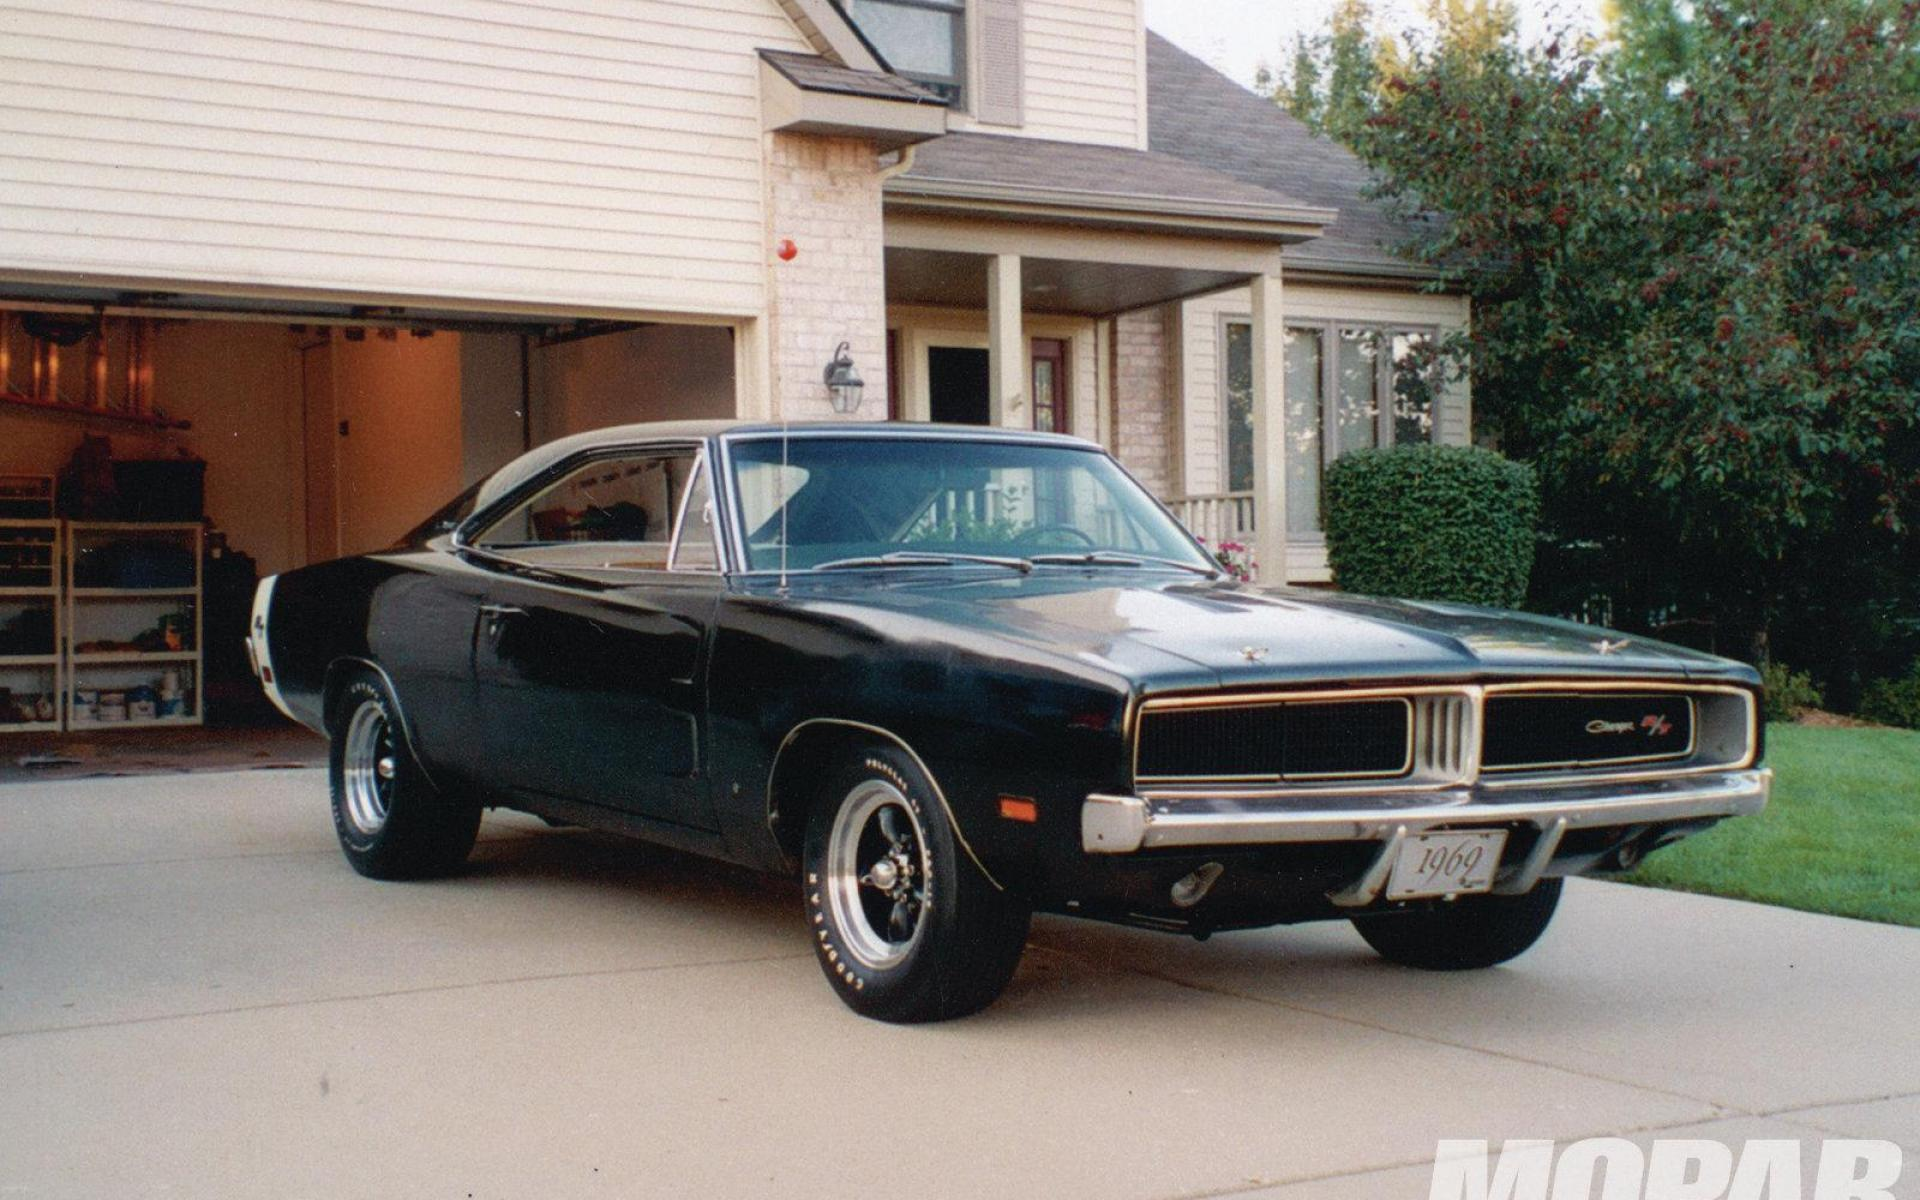 1969 dodge charger rt in a barn wallpaper   73356   HQ Desktop 1920x1200